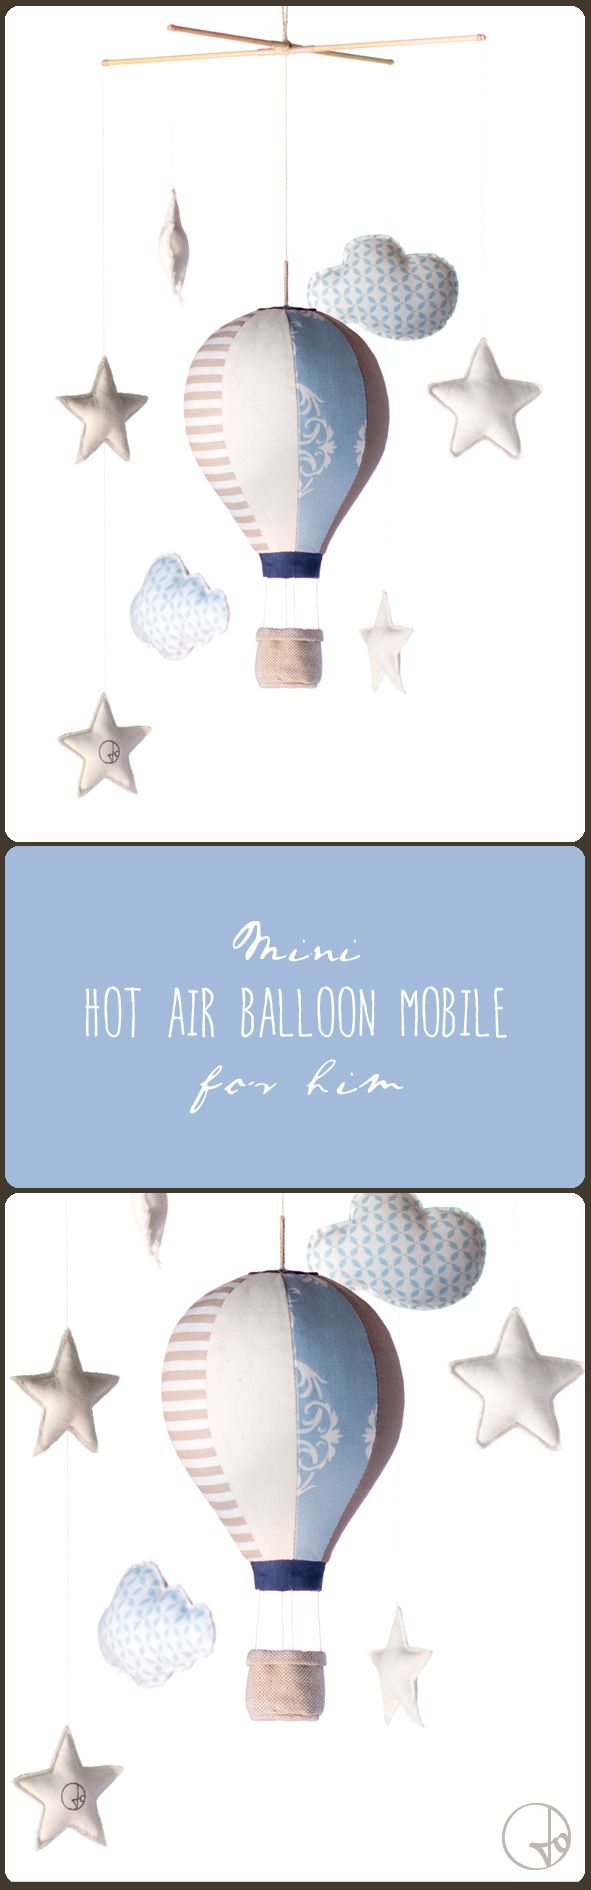 Mini hot air balloon mobile with stars and clouds for him by Jo handmade design. #hotairballoon #mobile #nursery